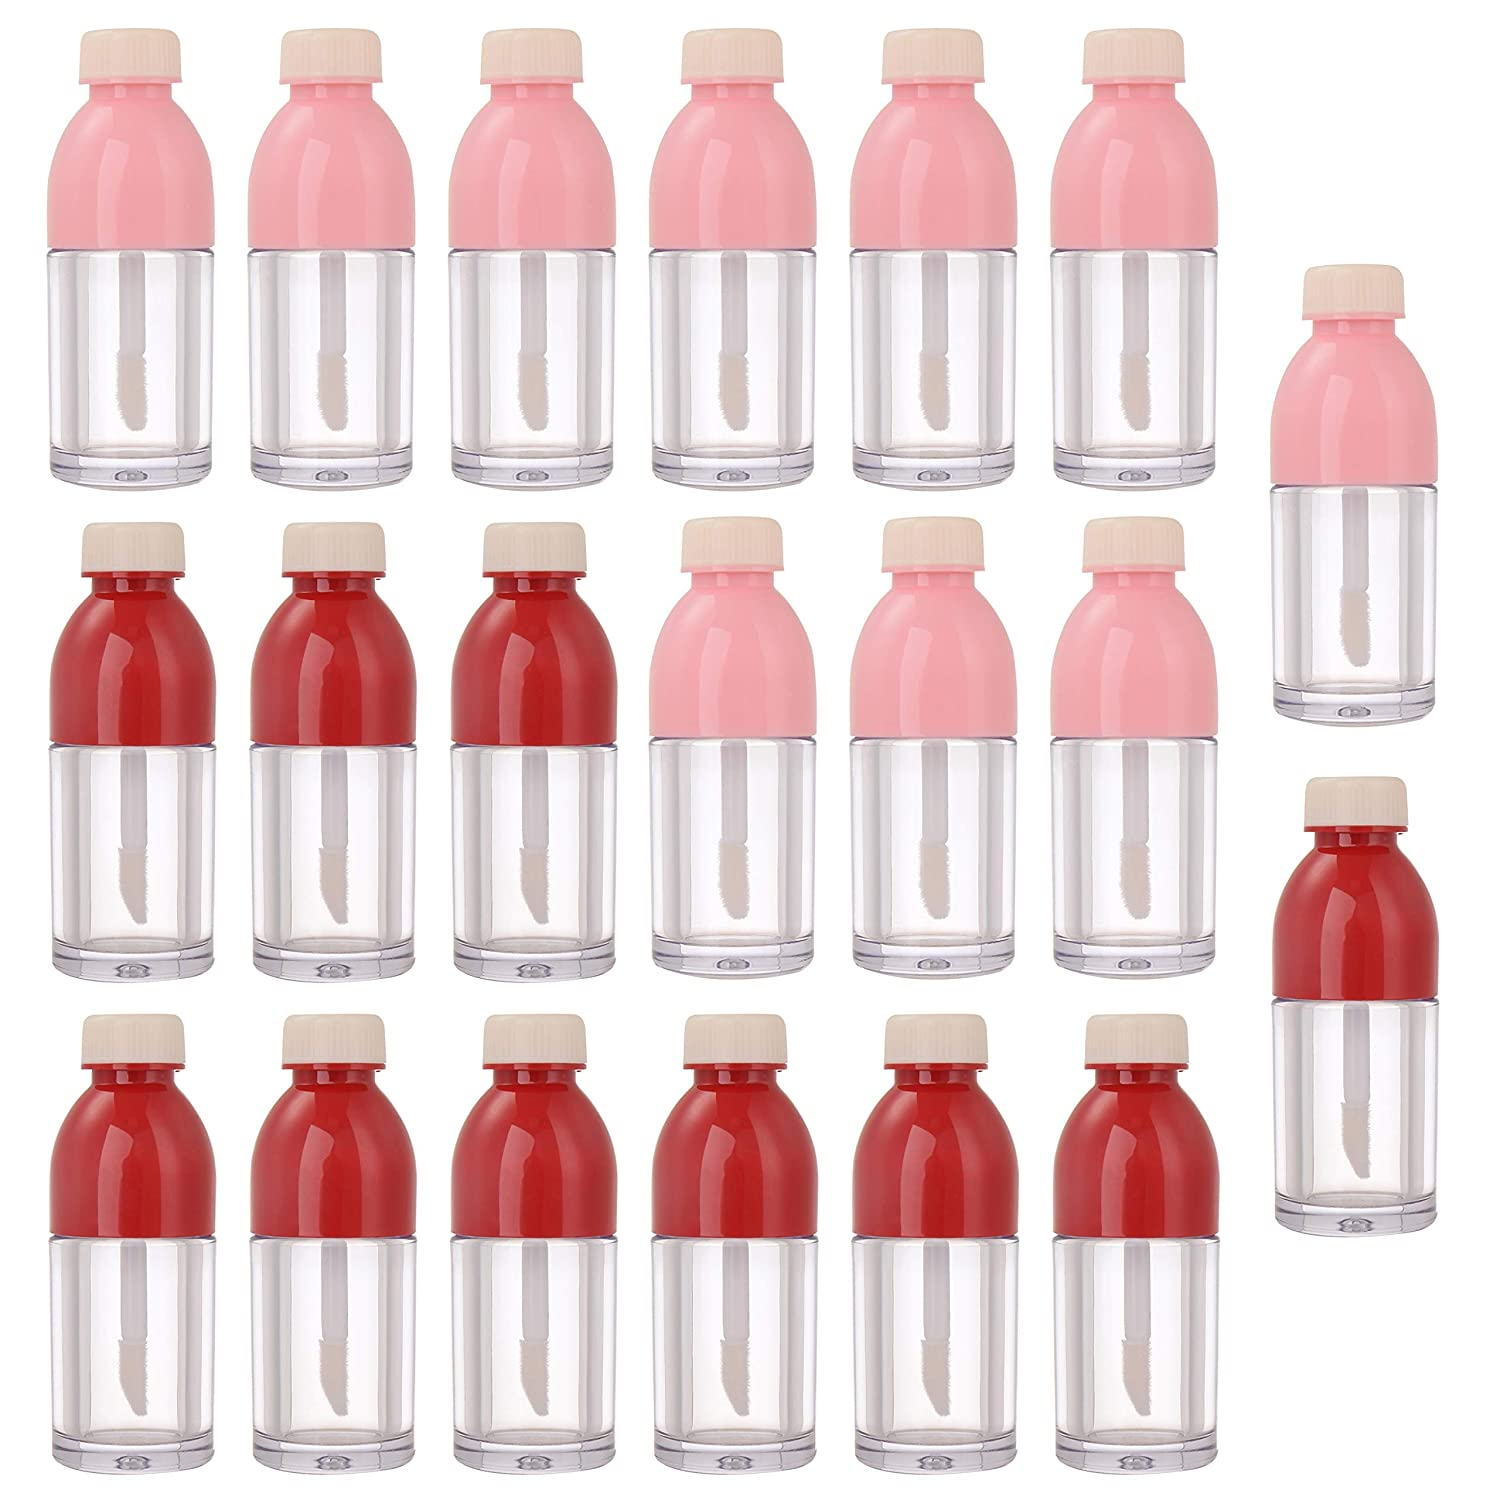 YARUMI 20 Pack Cute Lipgloss Empty Refillable Tubes,8ml Beverage Bottle-Shaped Lip Gloss Containers with Applicator,Cosmetic Reusable Lipstick Sample Vials Lip Glaze Clear Bottle with Rubber Stopper